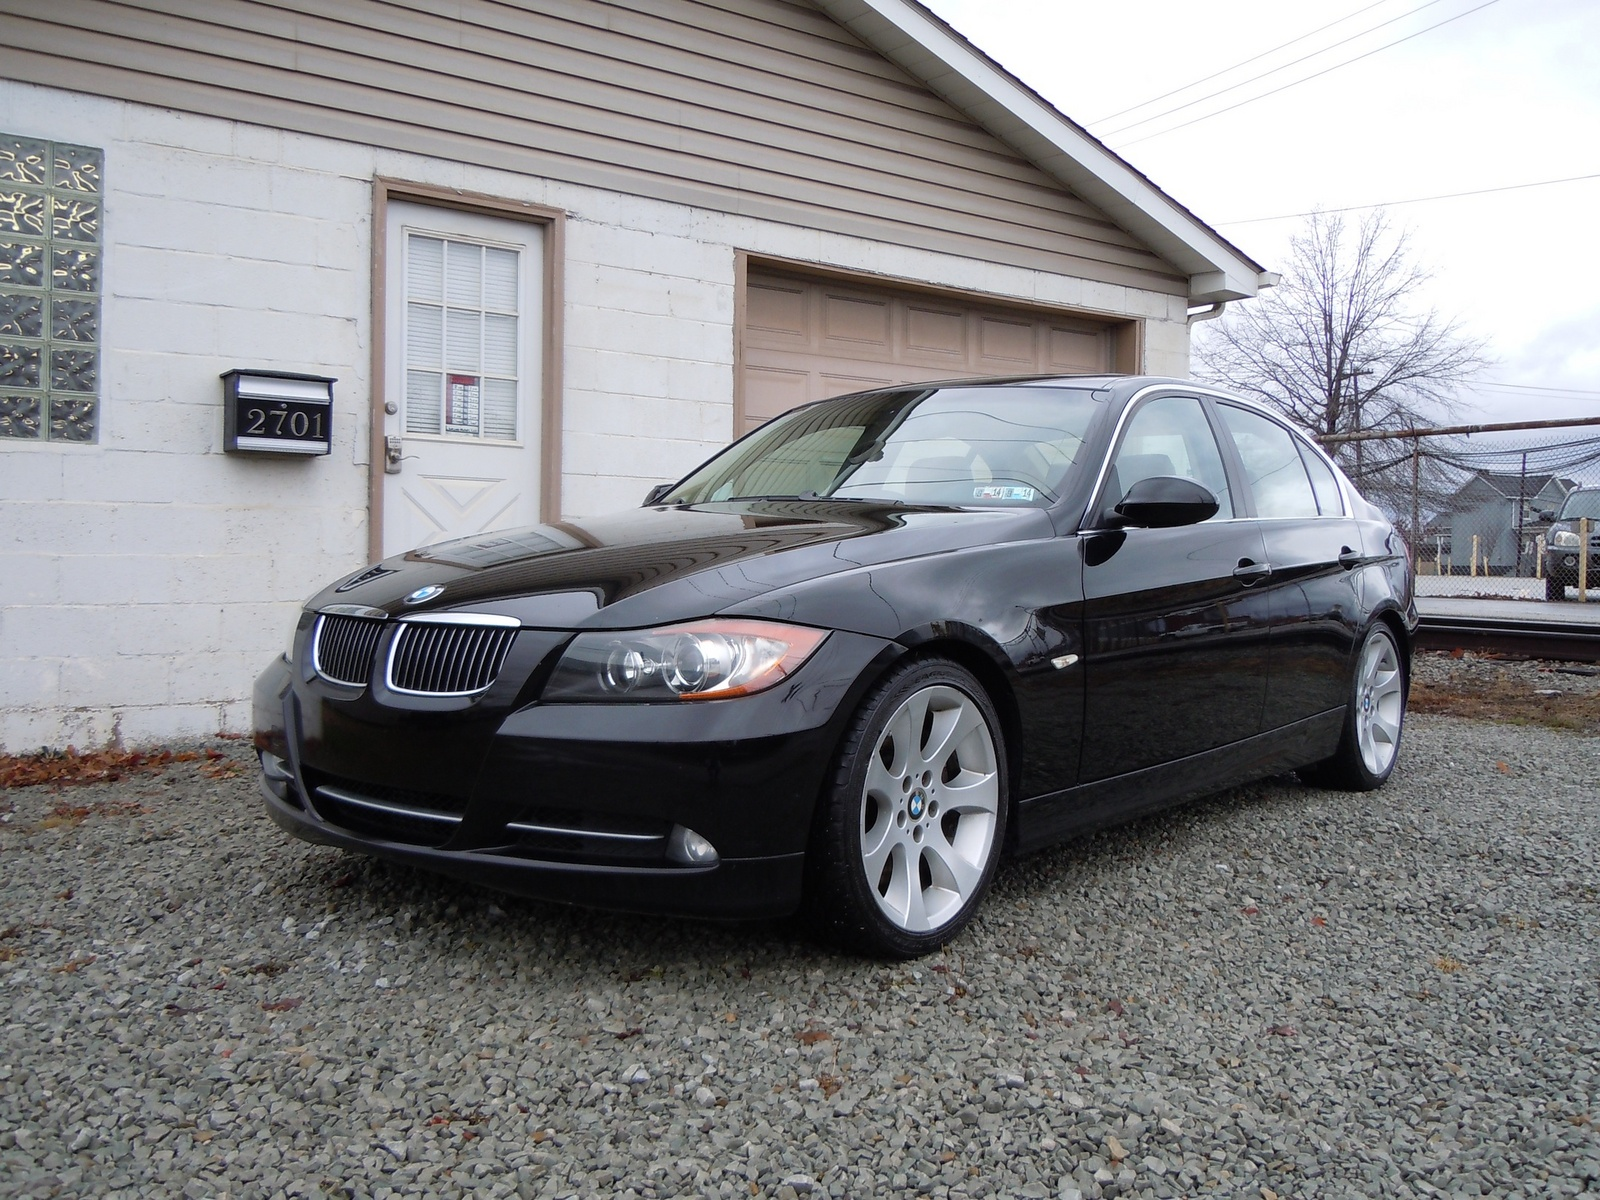 BMW 3 series 335i 2008 photo - 2